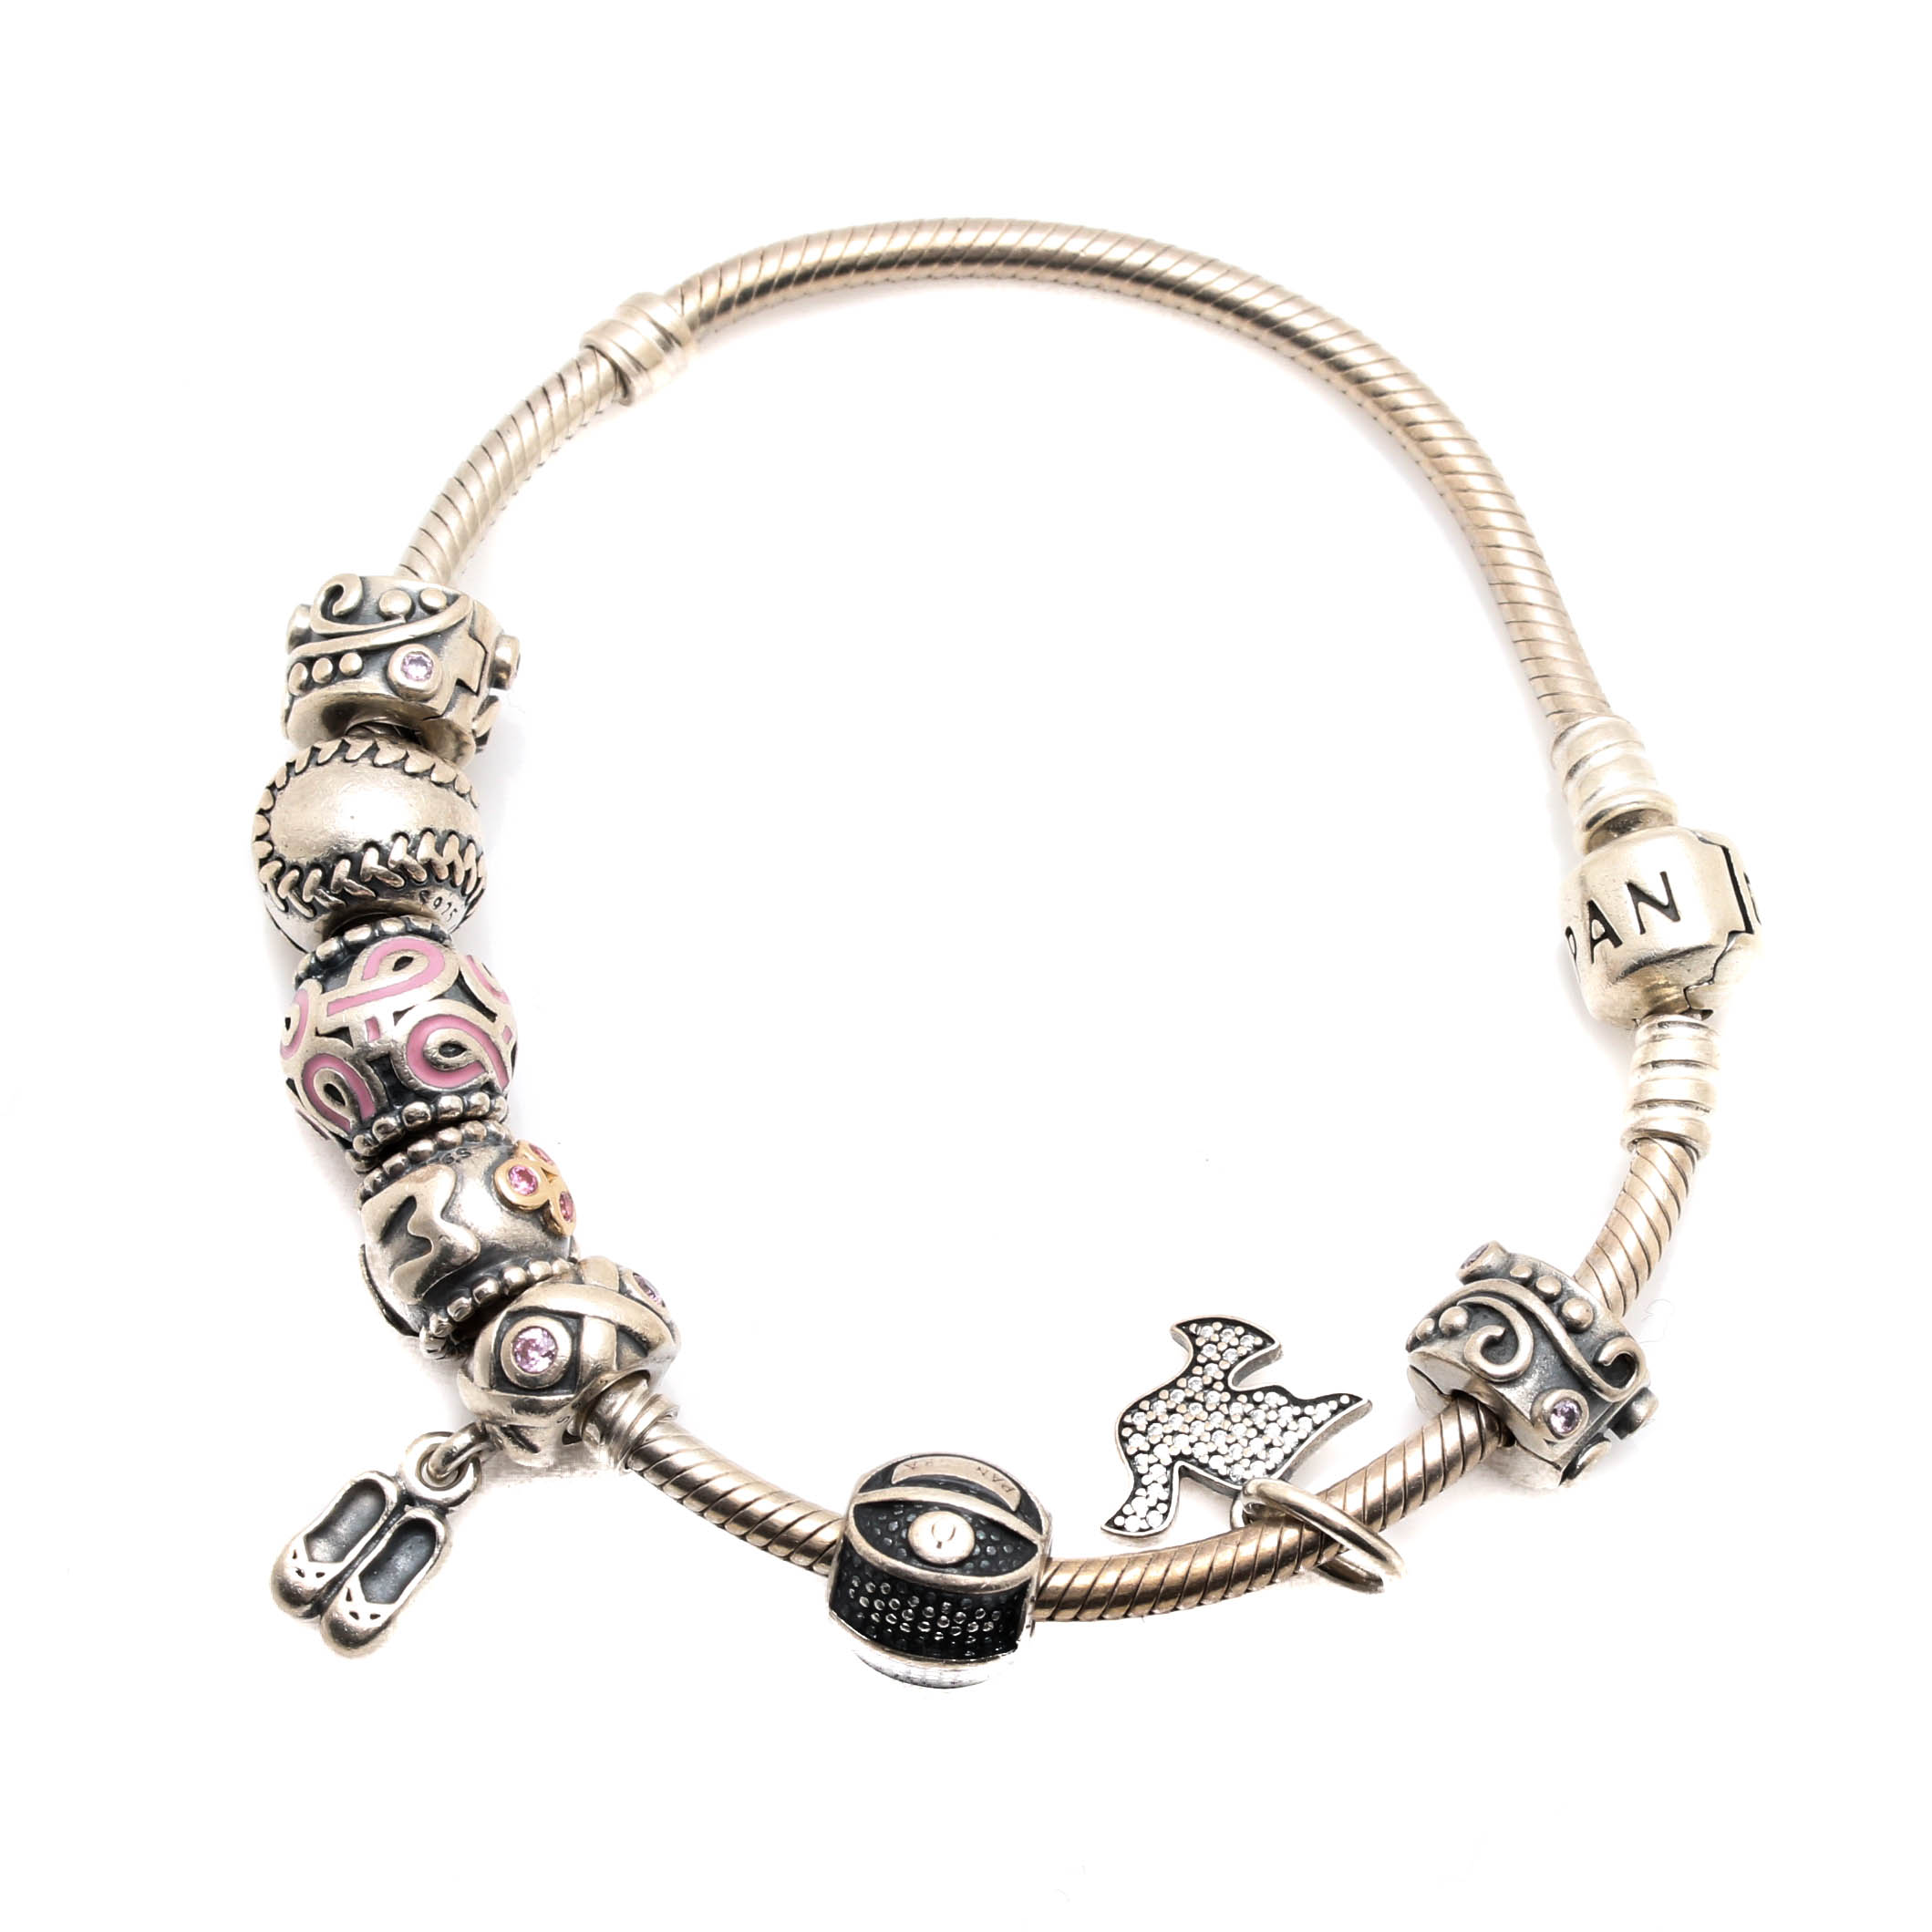 f3787a576 ... promo code for pandora sterling silver charm bracelet 3a7ac 2068f